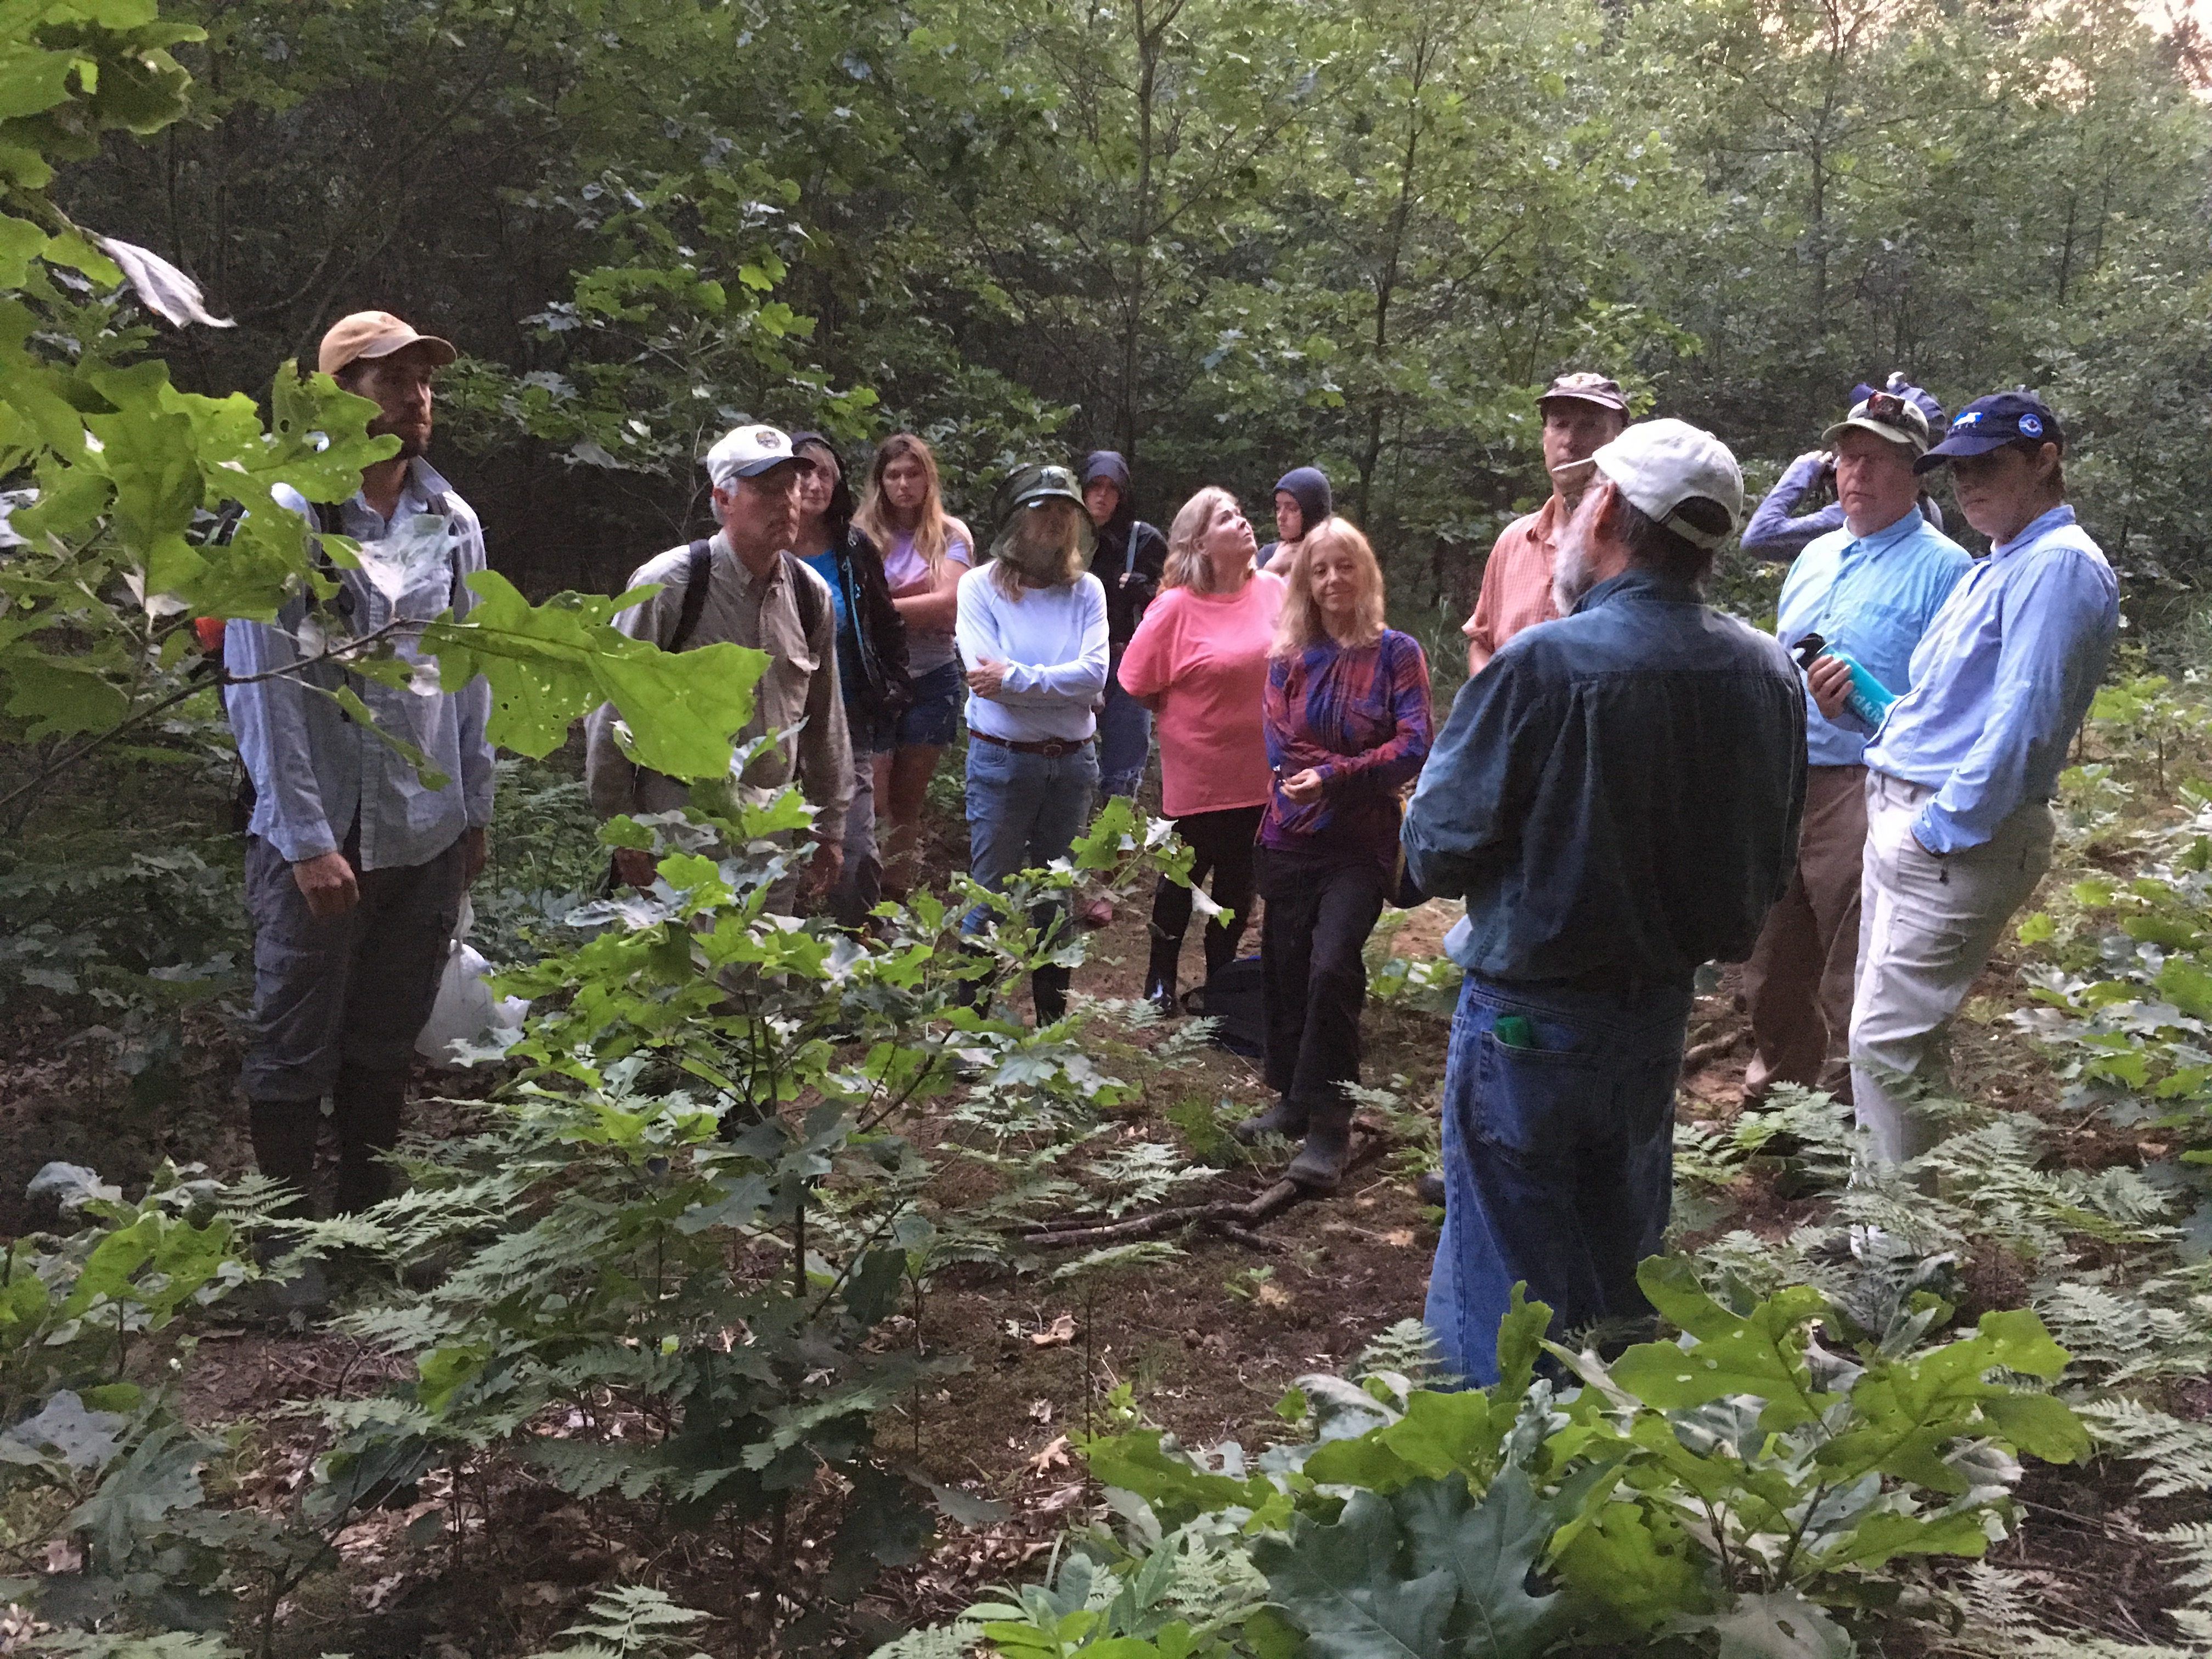 ViewPoint – Fall 2019 – Event participants have fun exploring the outdoors